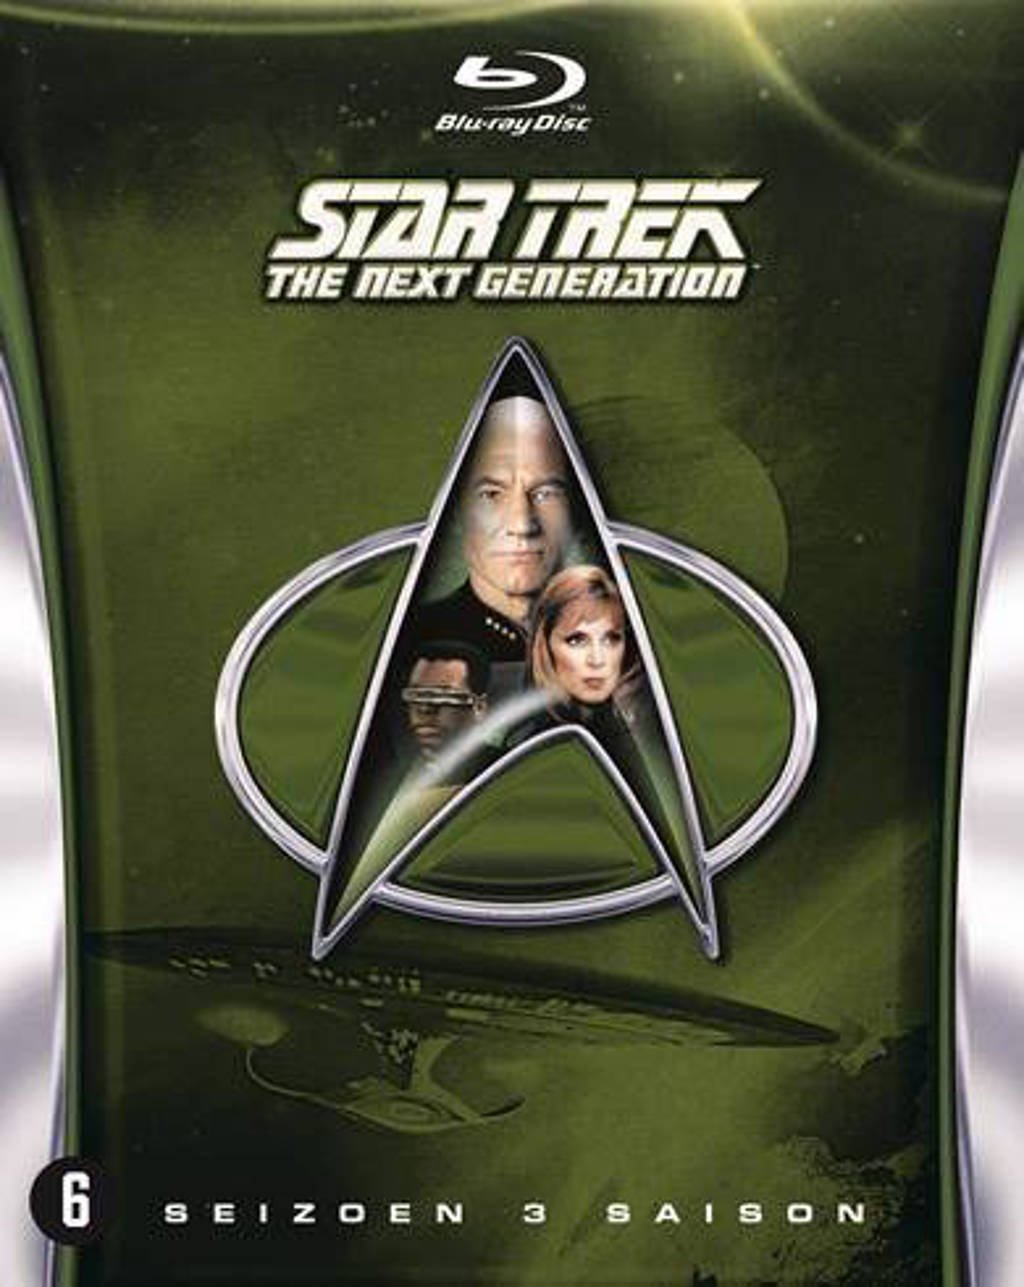 Star trek next generation - Seizoen 3 (Blu-ray)